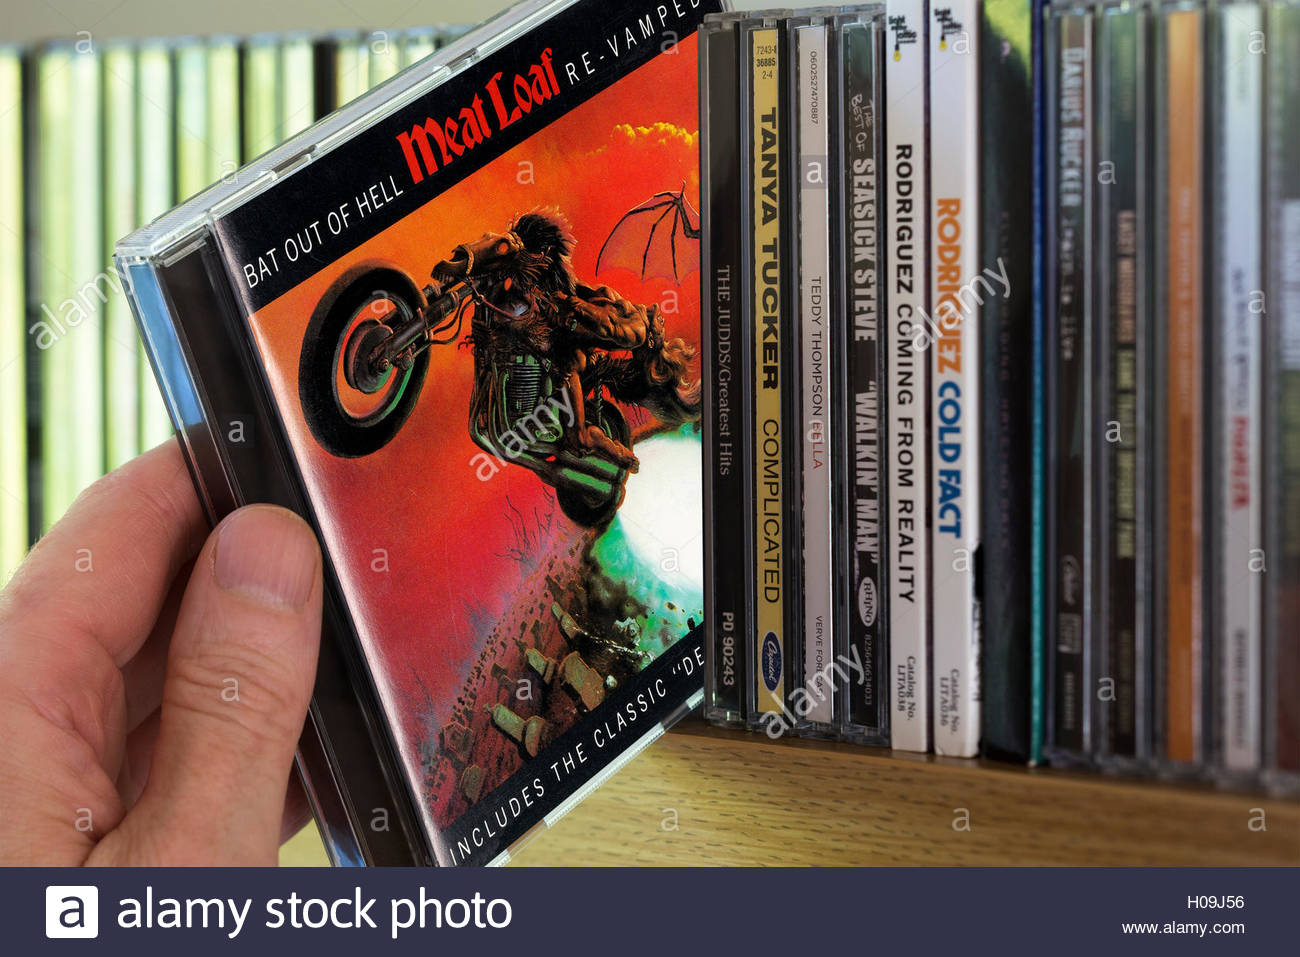 Meat Loaf Album Bat Out Of Hell CD being chosen from a shelf of other CD's - Stock Image